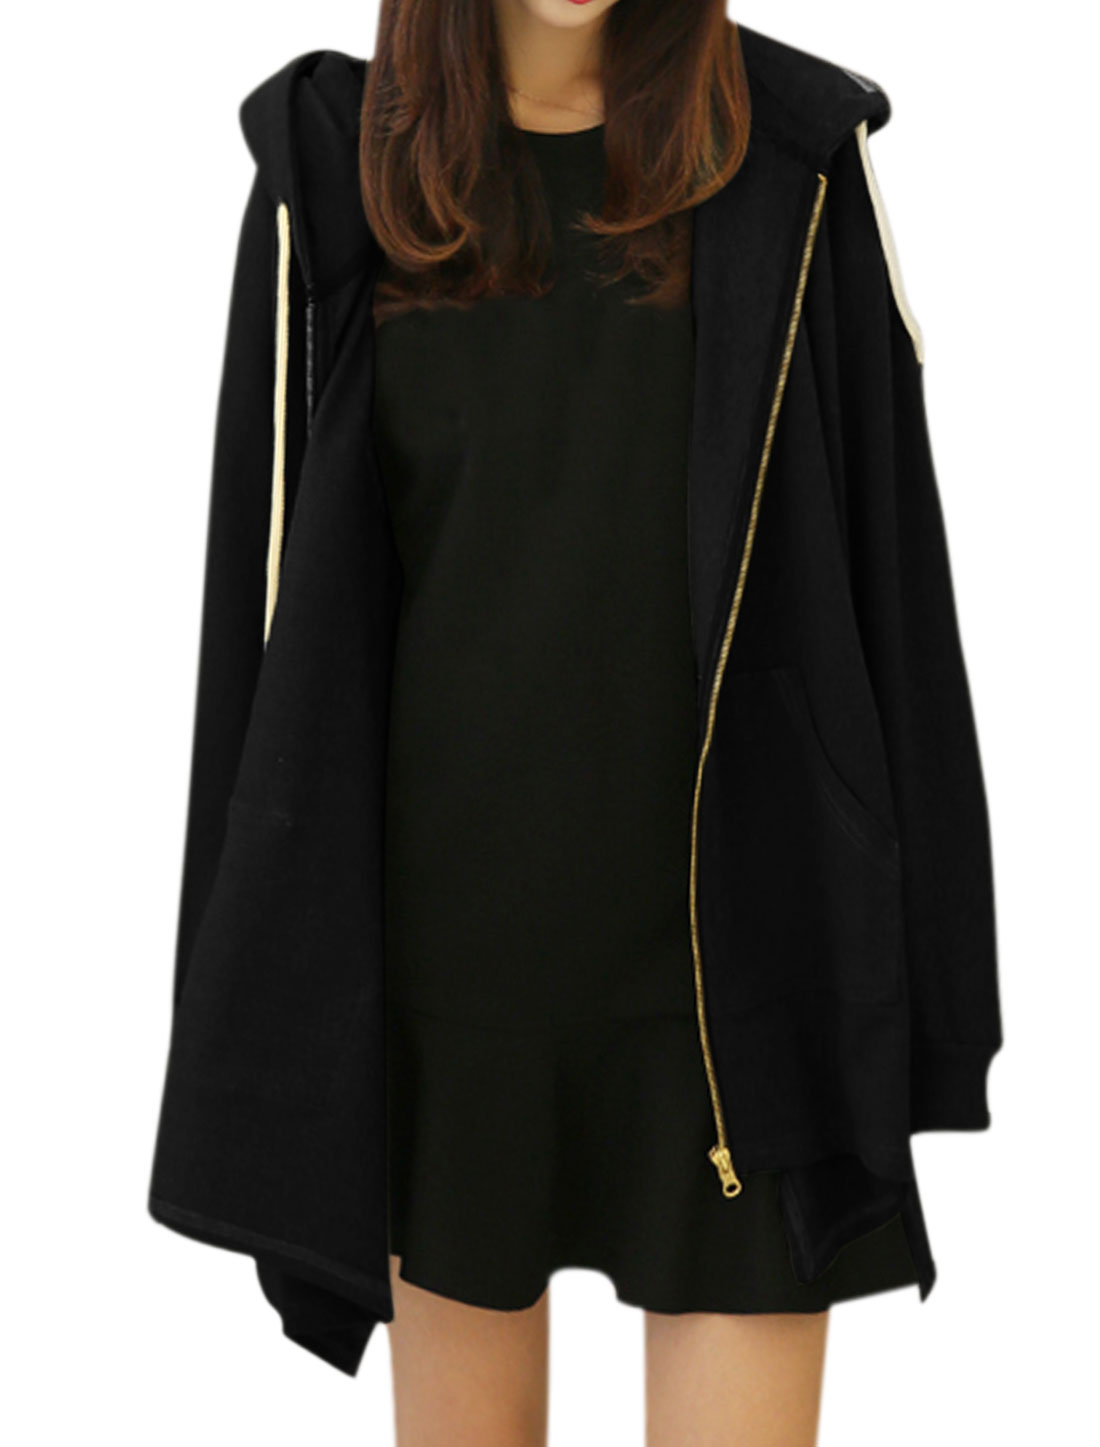 Women Long Sleeves Asymmetric Hem Drawstring Hooded Tunic Jacket Black XS